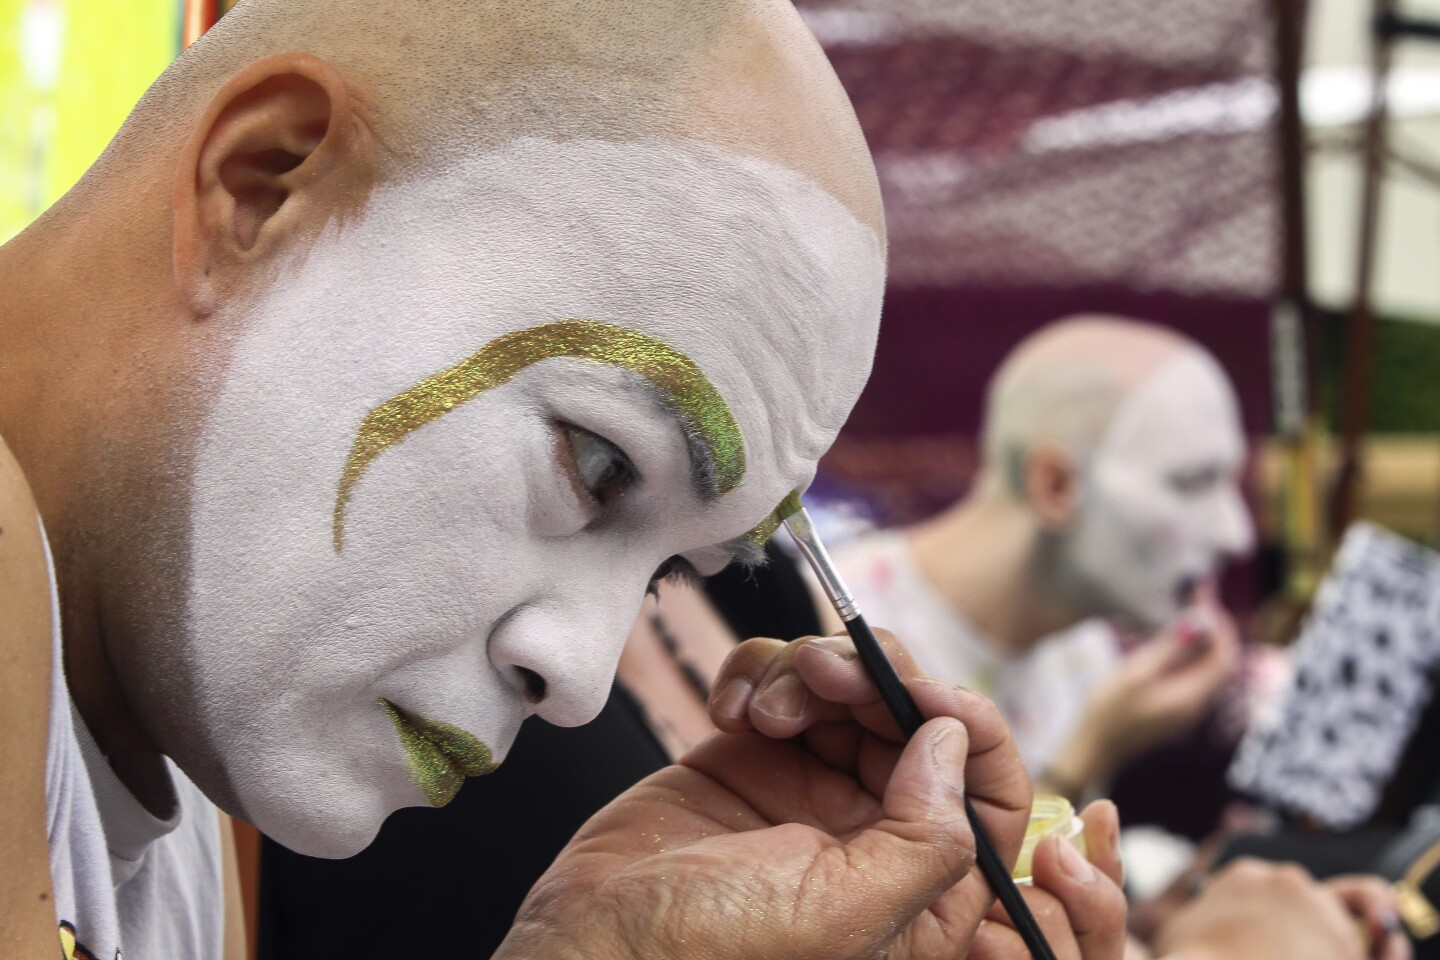 Sister Amanda Reckinwith and Novice Sister Lavinia Longthyme, background, who are both members of the San Diego Sisters of Perpetual Indulgence, put on makeup in preparation to bless a ribbon cutting ceremony during the Out at the Fair festival at the San Diego County Fair on Saturday, June 1, 2019 in Del Mar, California.